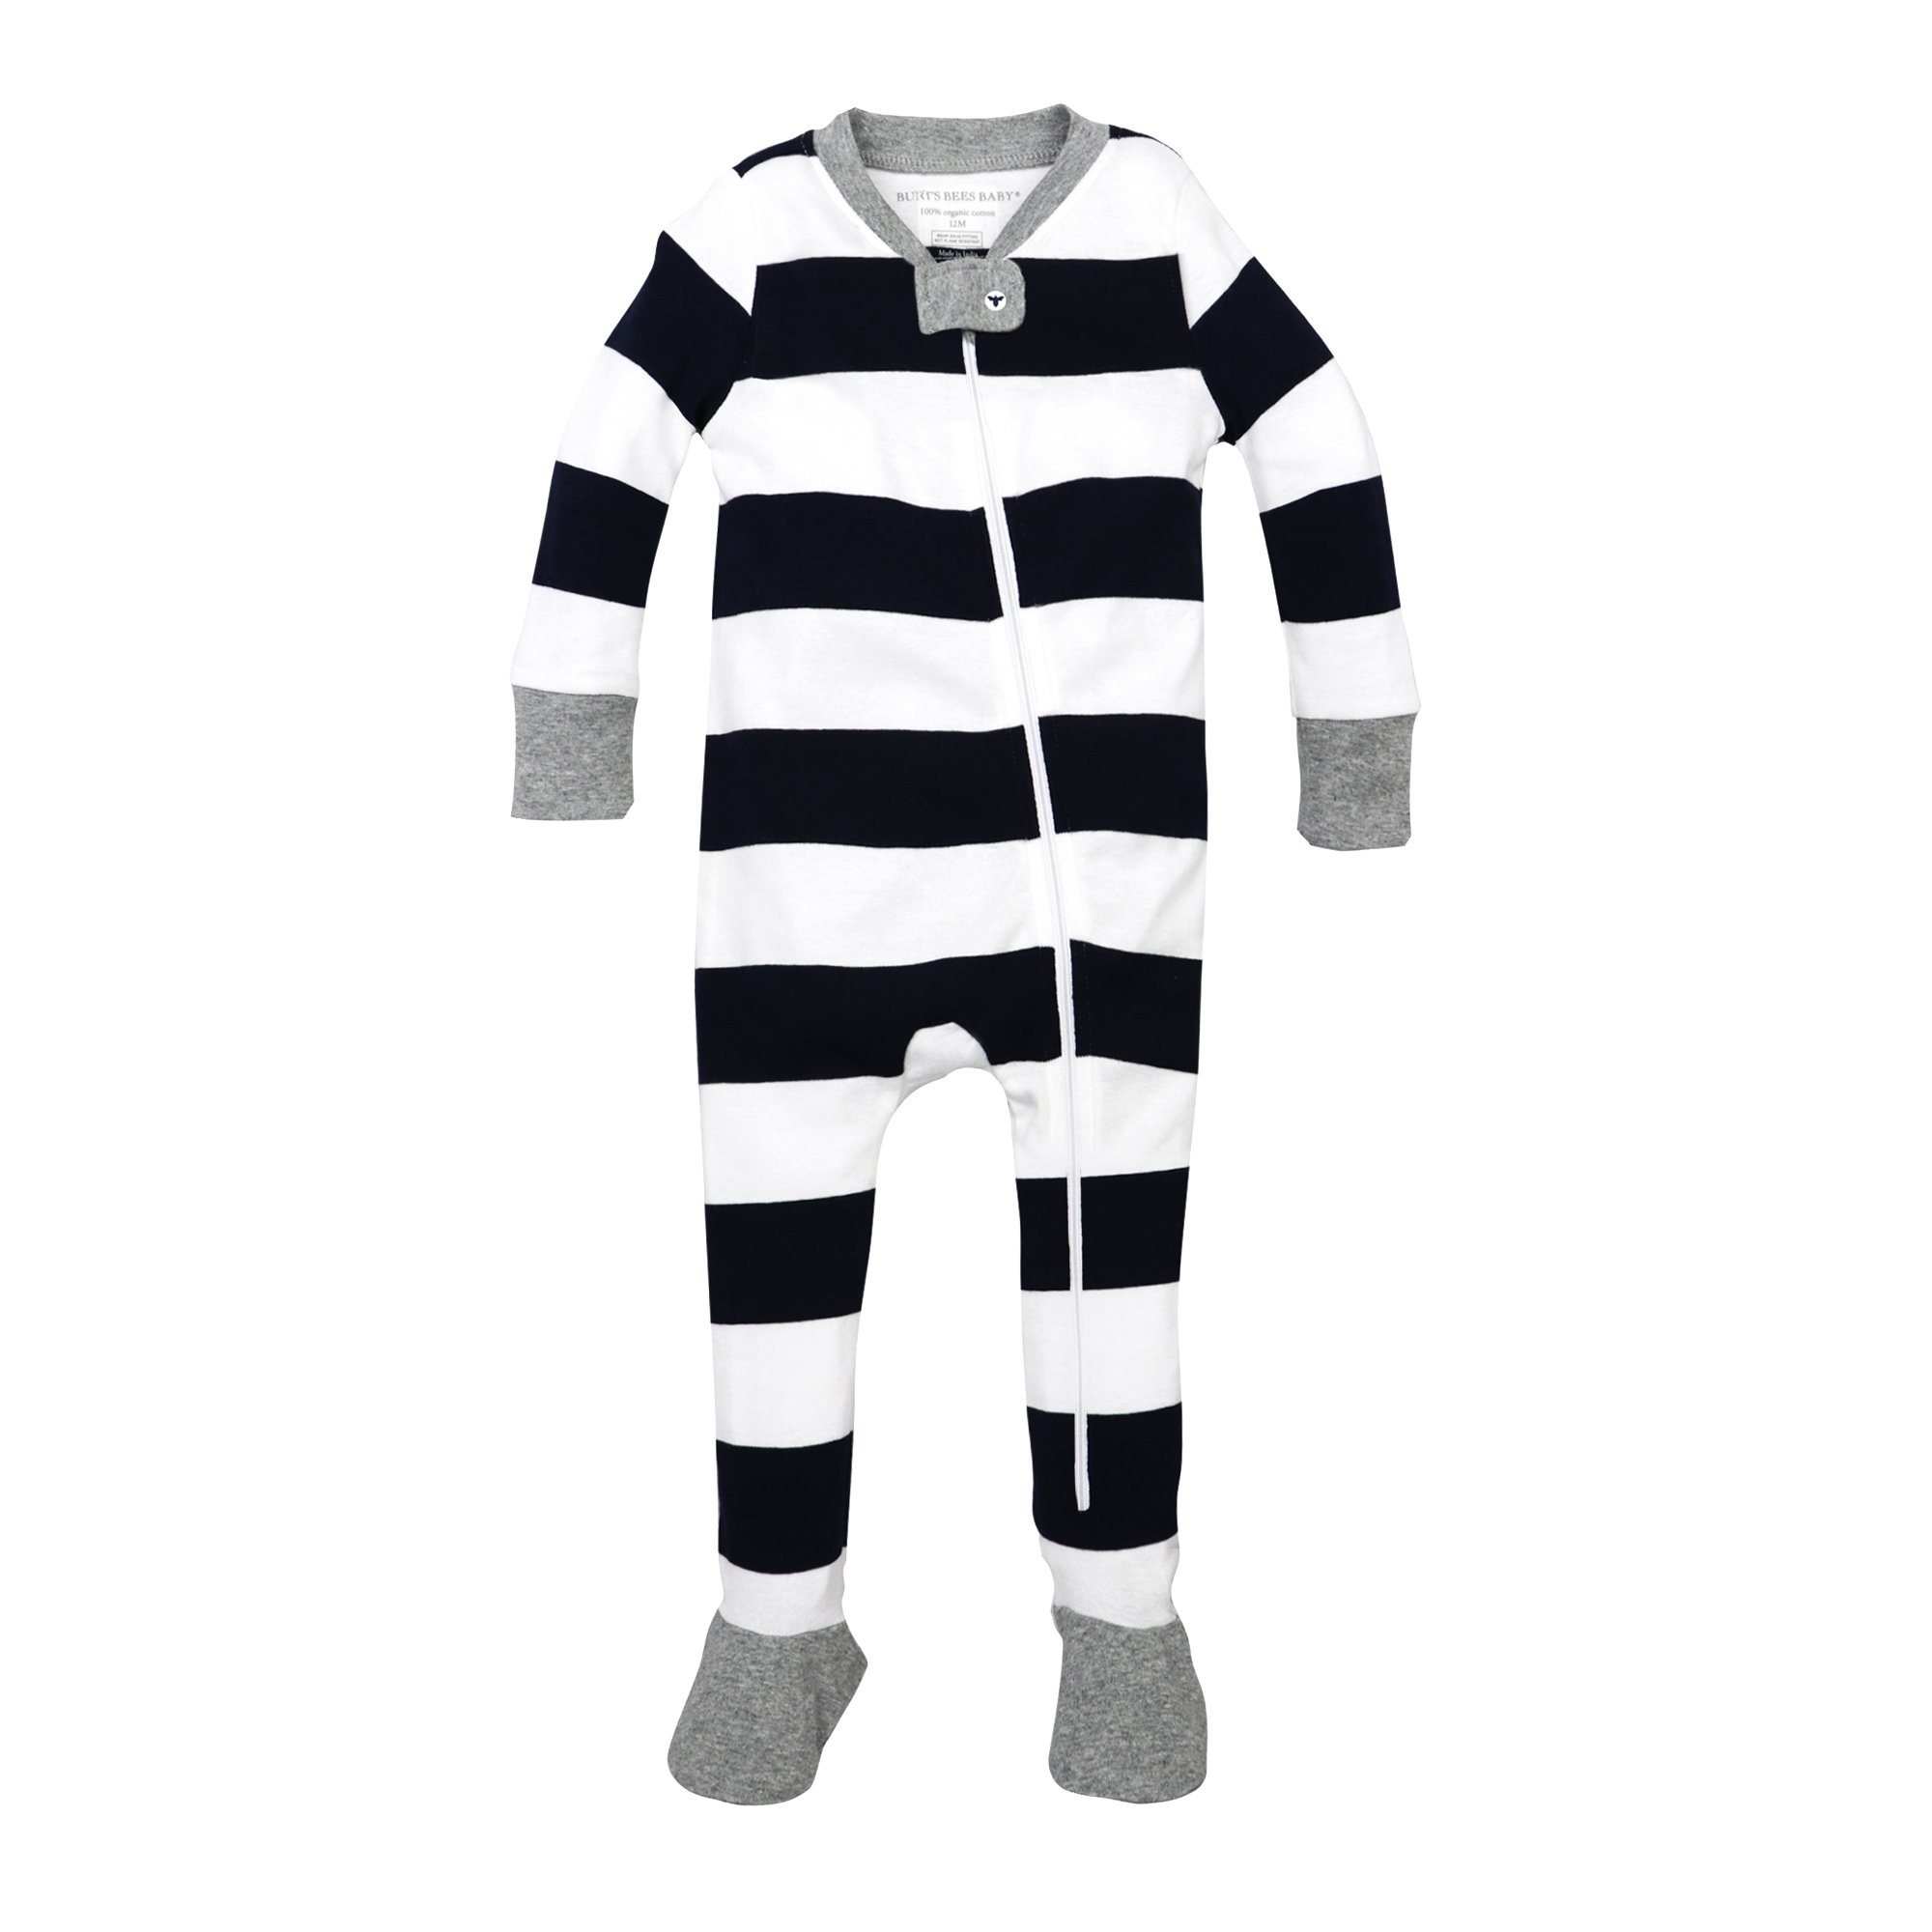 Burt's Bees Baby Baby Boys' Pajamas, Zip Front Non-Slip Footed Sleeper Pjs, 100% Organic Cotton, Midnight Rugby Stripe, 18 Months